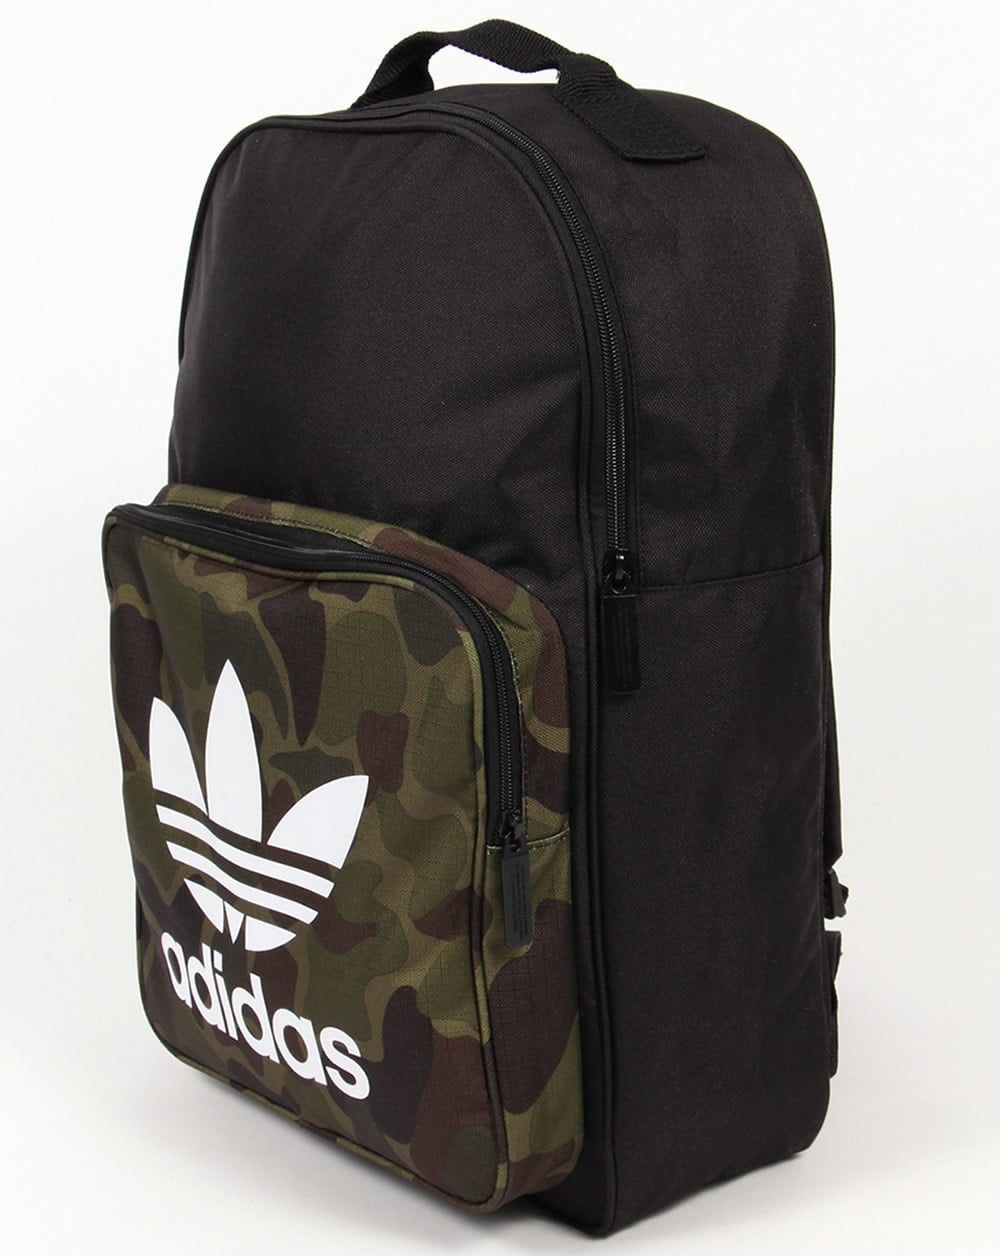 pre order better factory outlets Adidas Originals Classic Camo Backpack Black